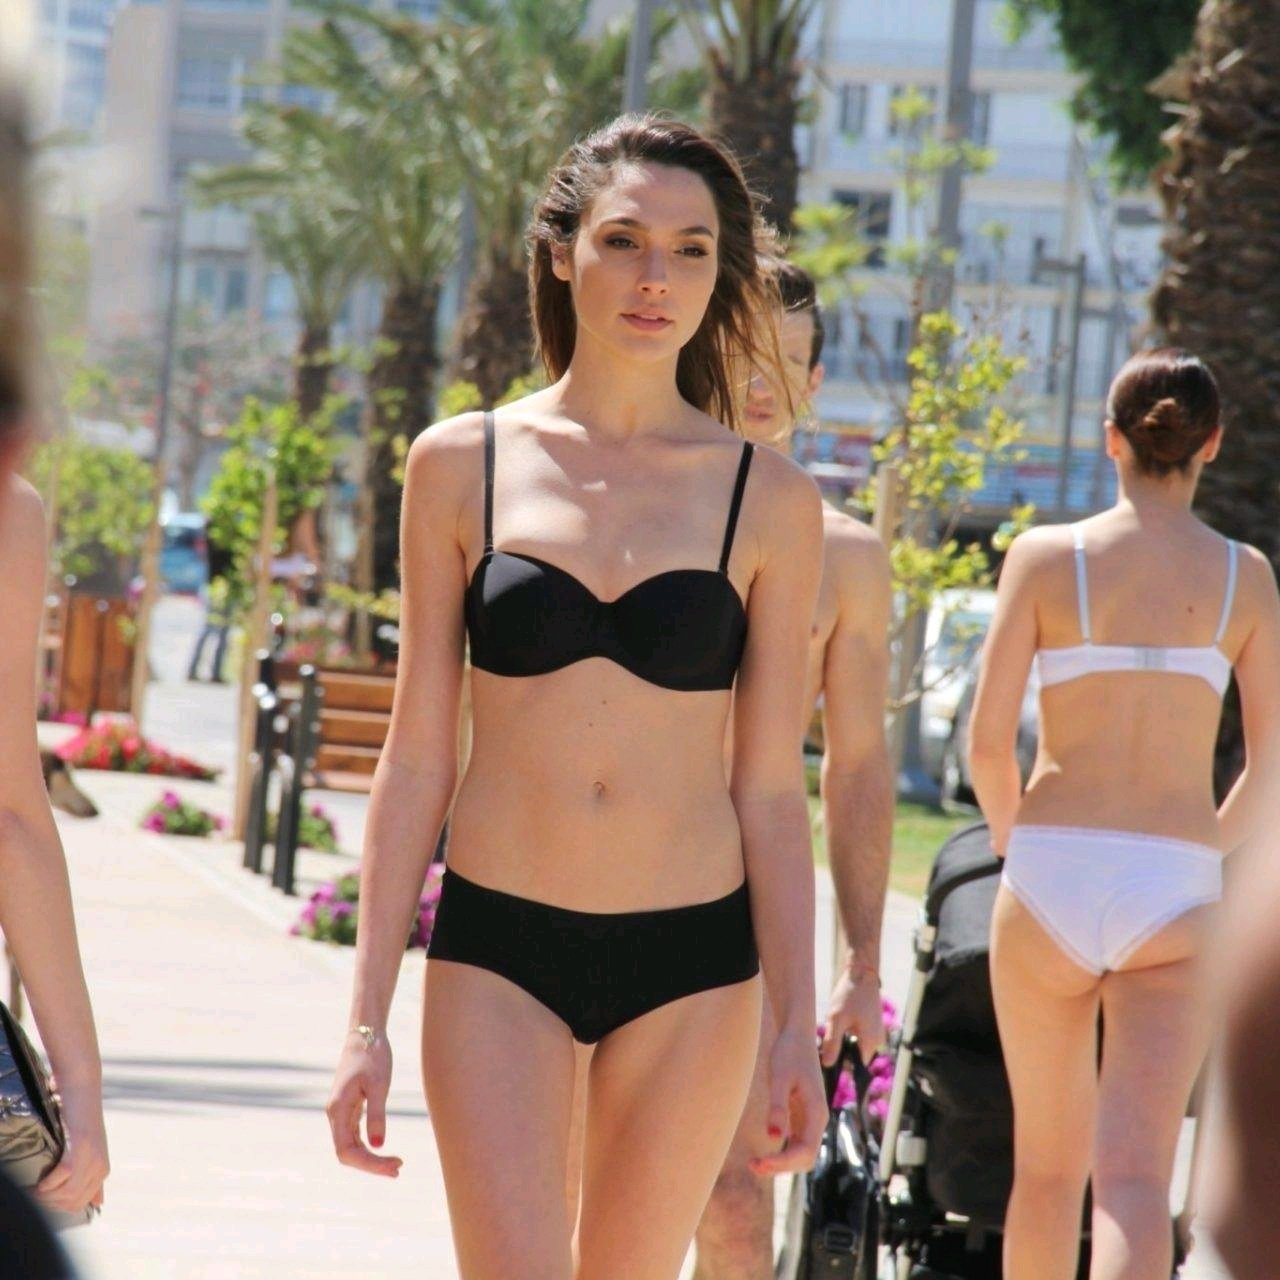 Wonder Women Actress Gal Gadot Spotted In Bikini On Road Before Public